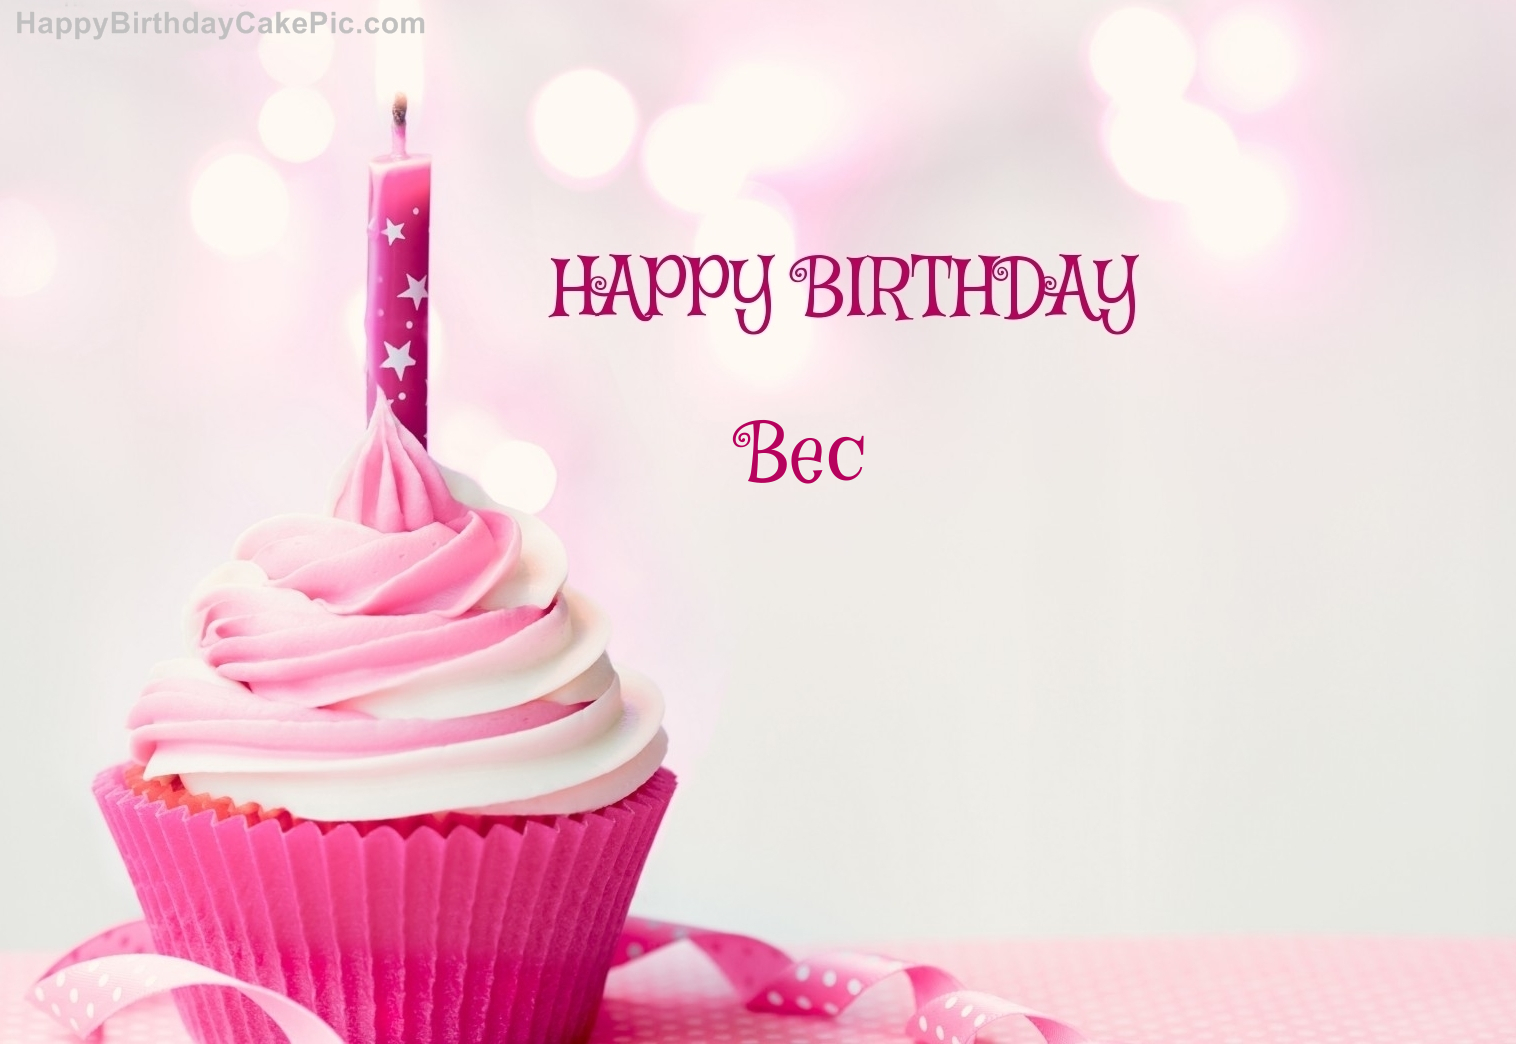 Happy Birthday Cupcake Candle Pink Cake For Bec